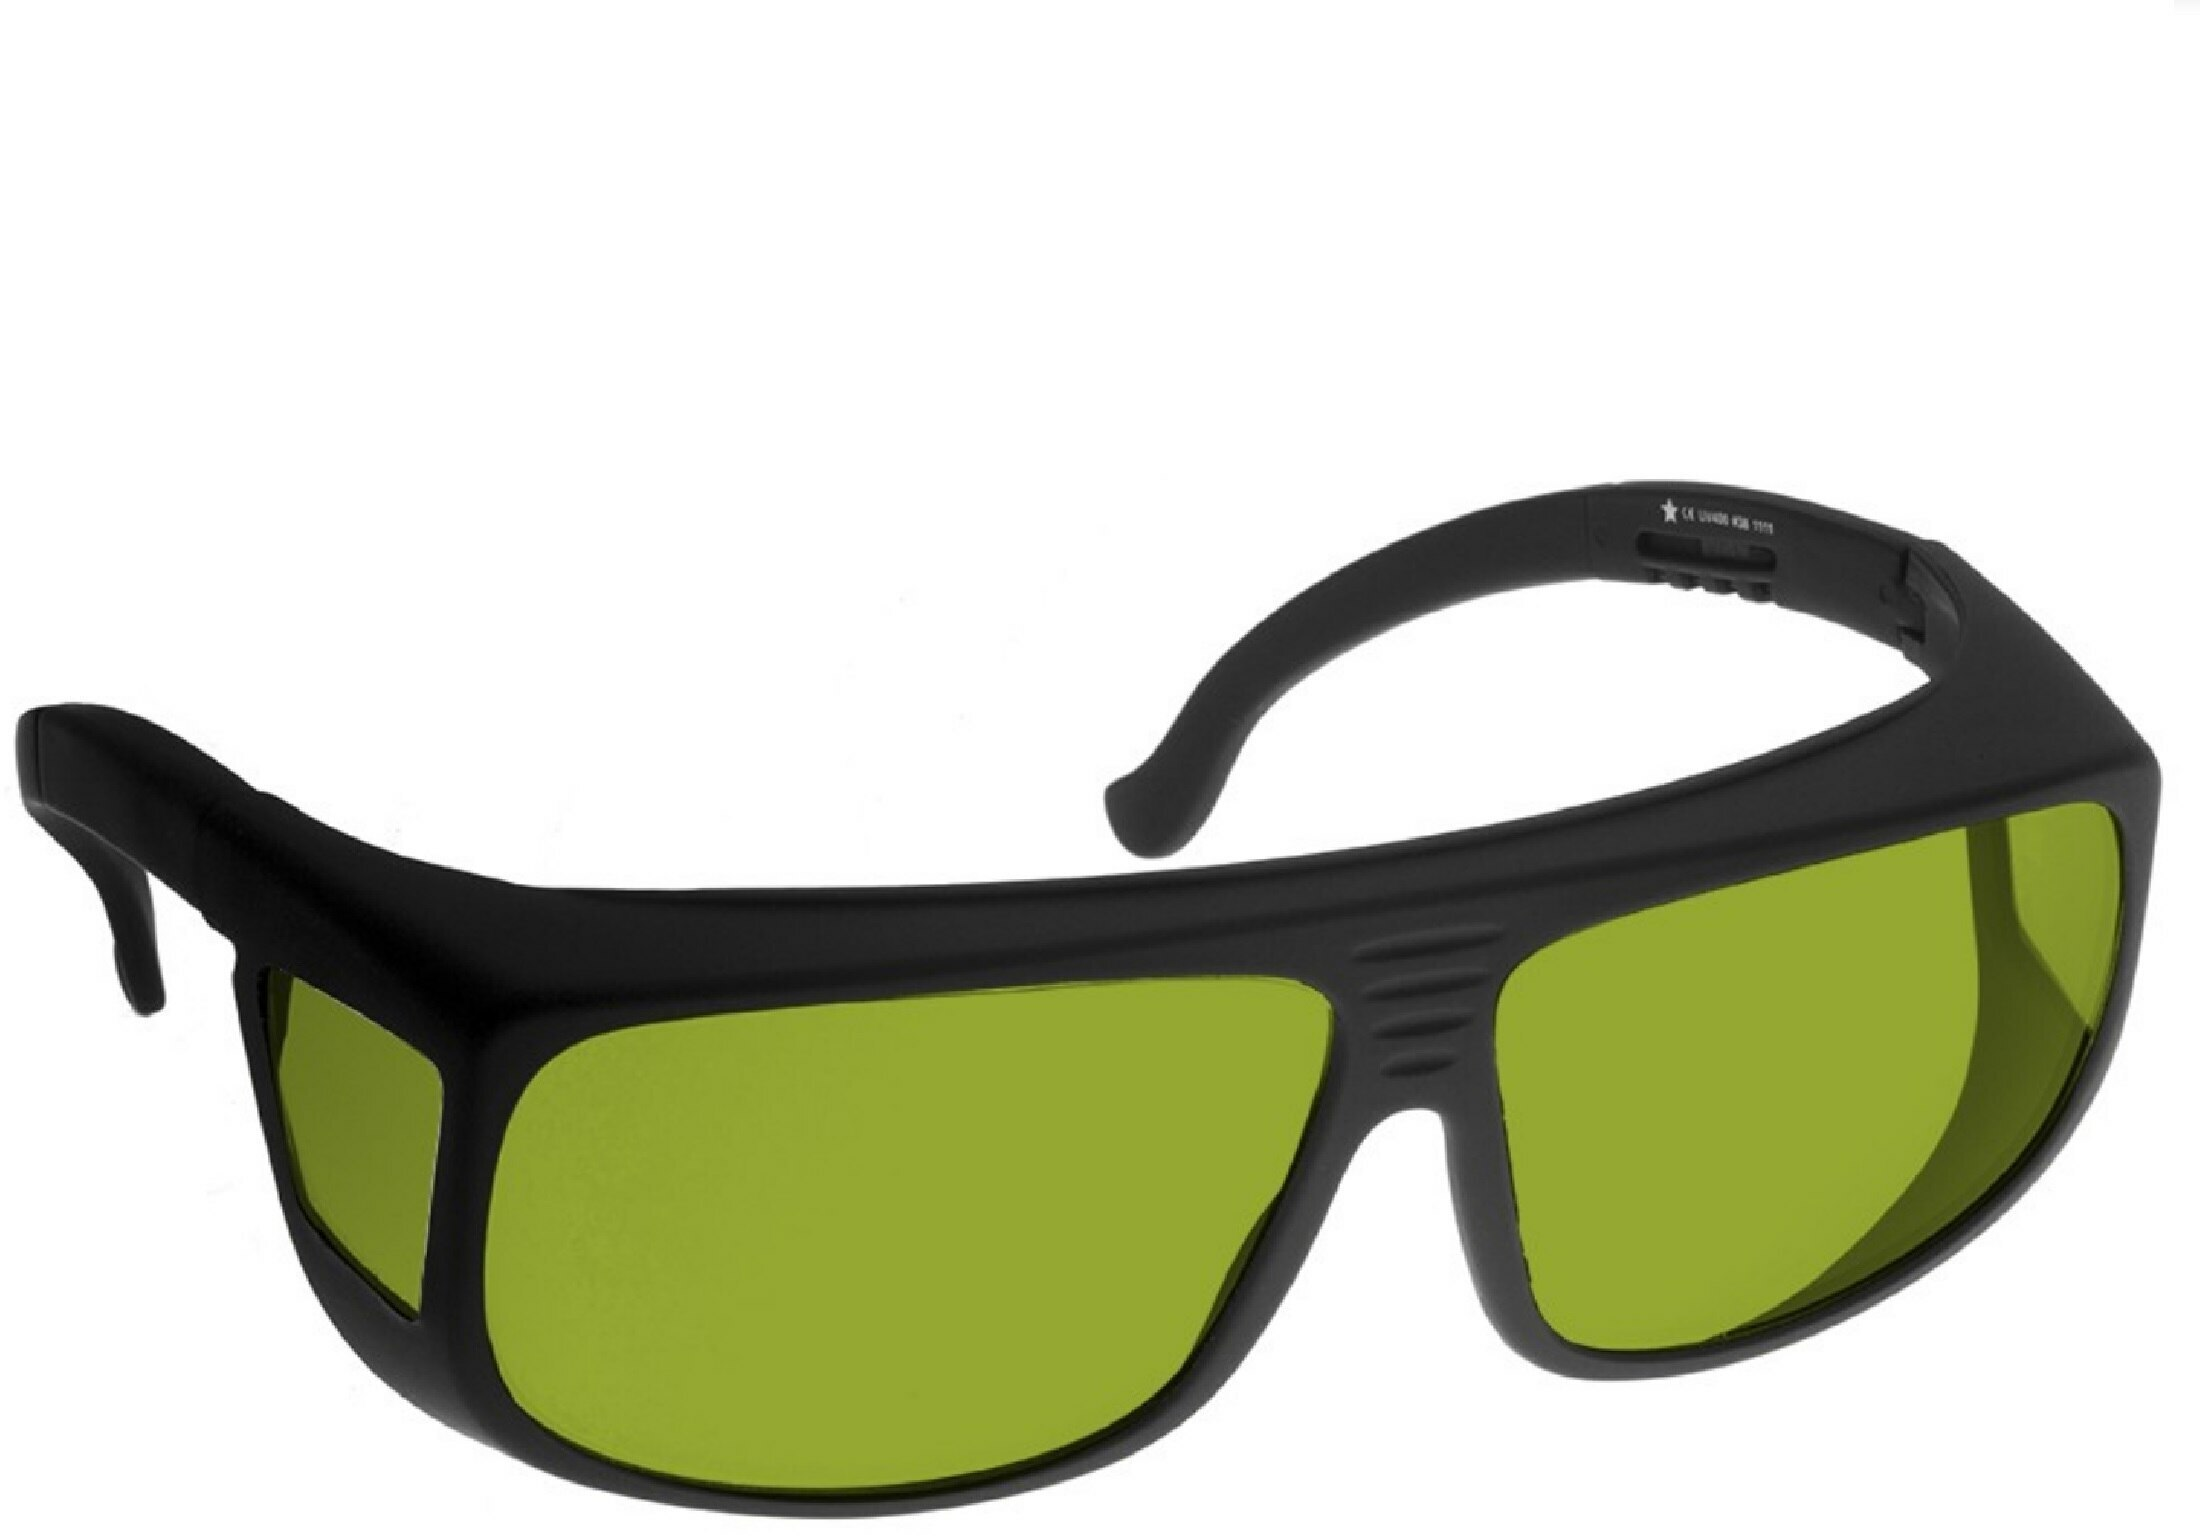 https://media.picotronic.de/products/ds_picture/lightbox/ml1_38.jpg